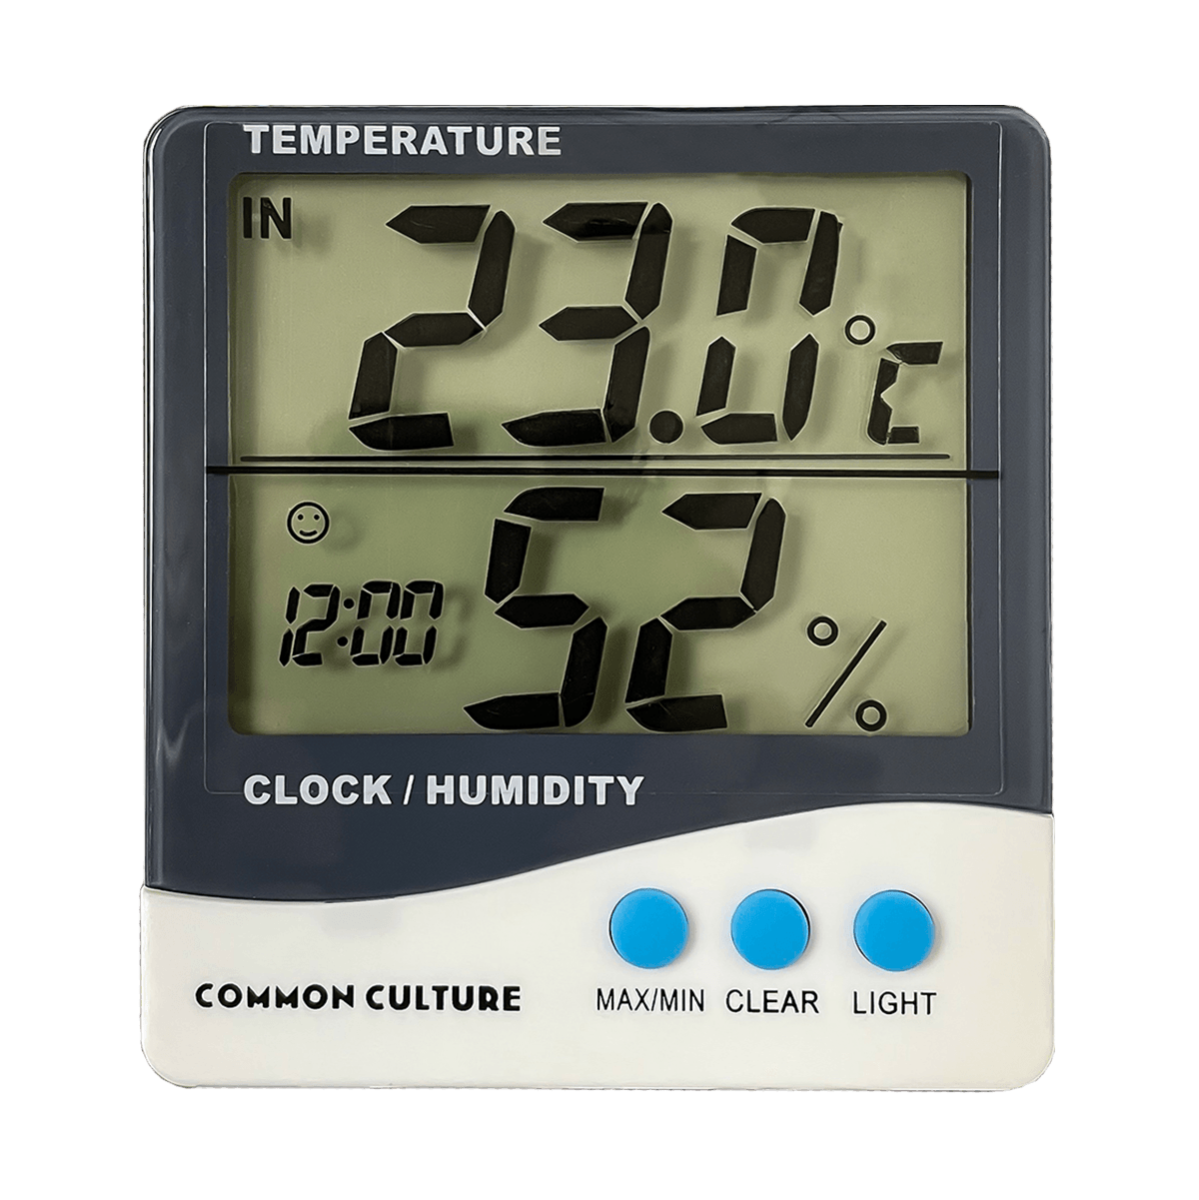 Photograph of Common Culture Large Display Thermometer & Hygrometer